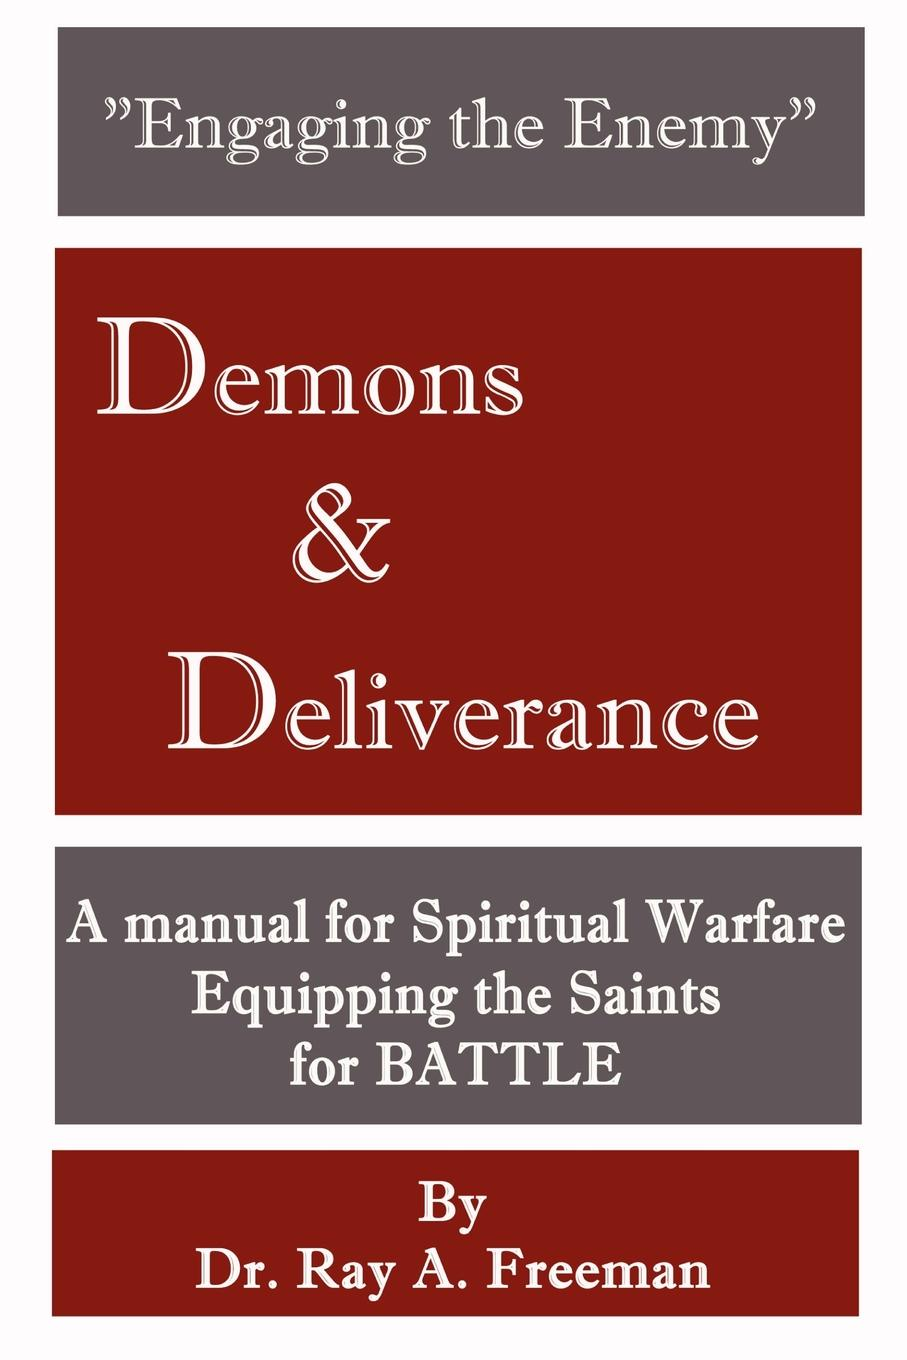 Ray Freeman Engaging the Enemy. Demons & Deliverance